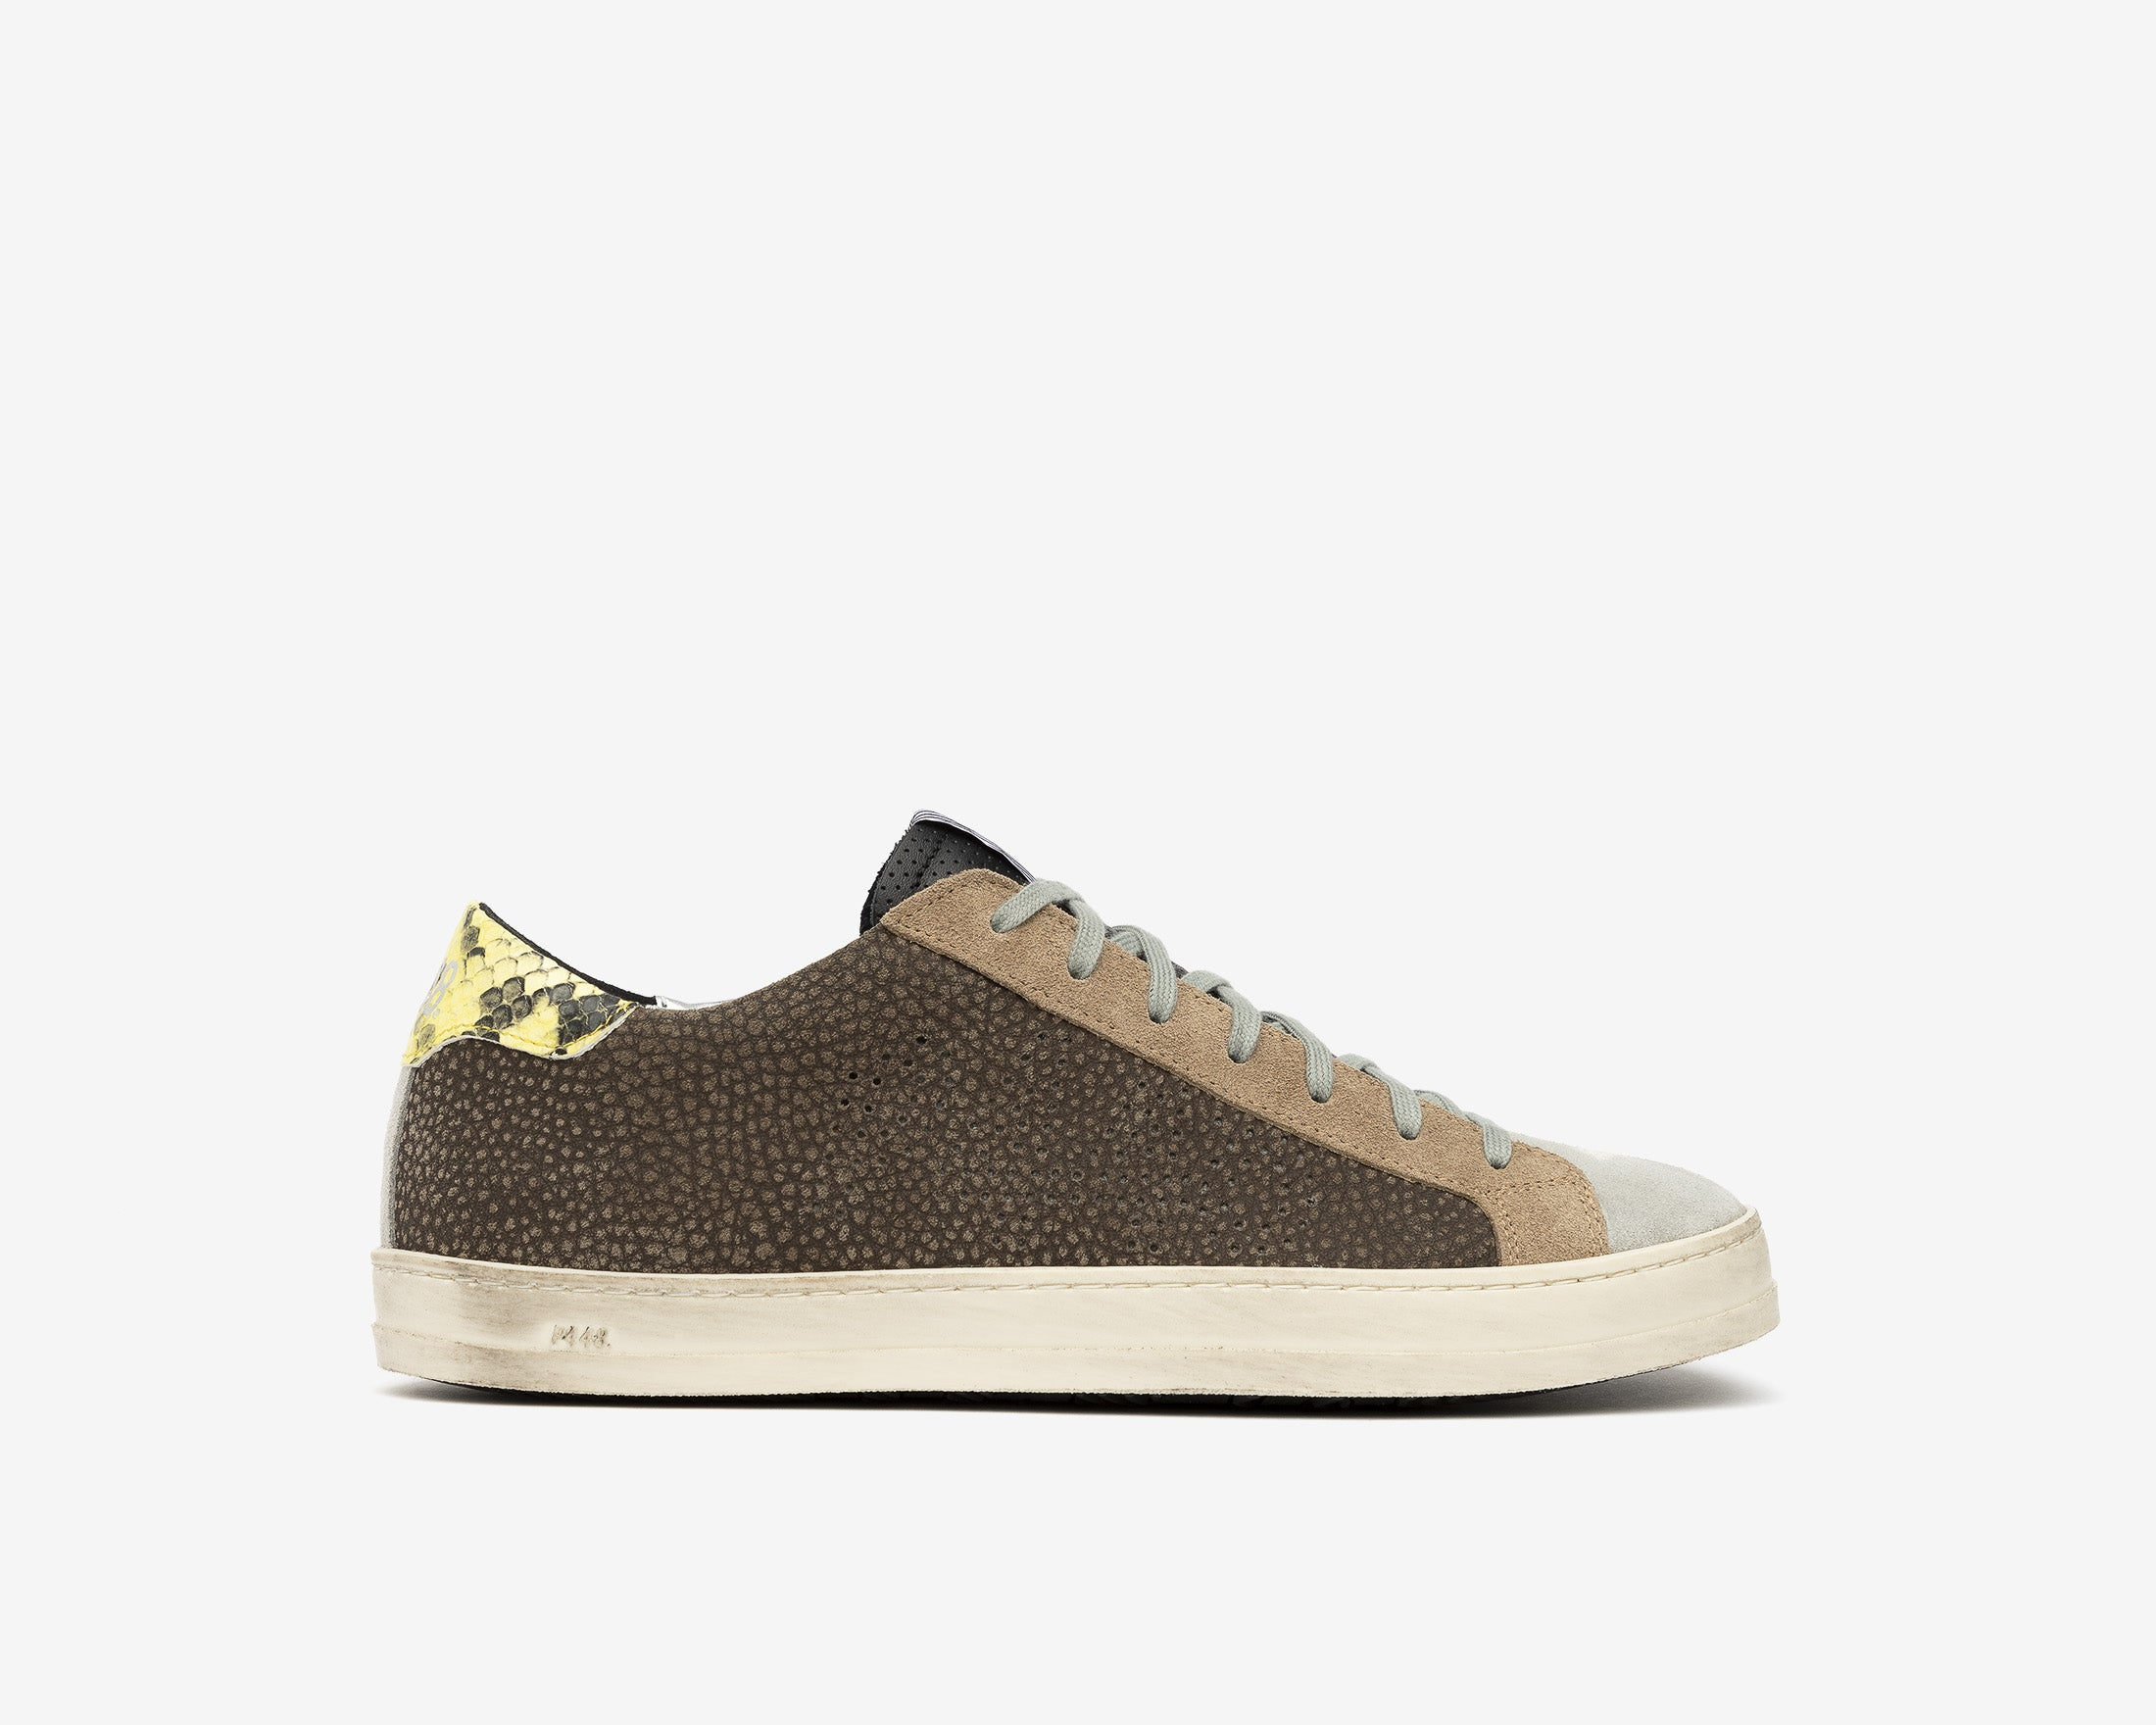 John Low-Top Sneaker in Brown - Profile